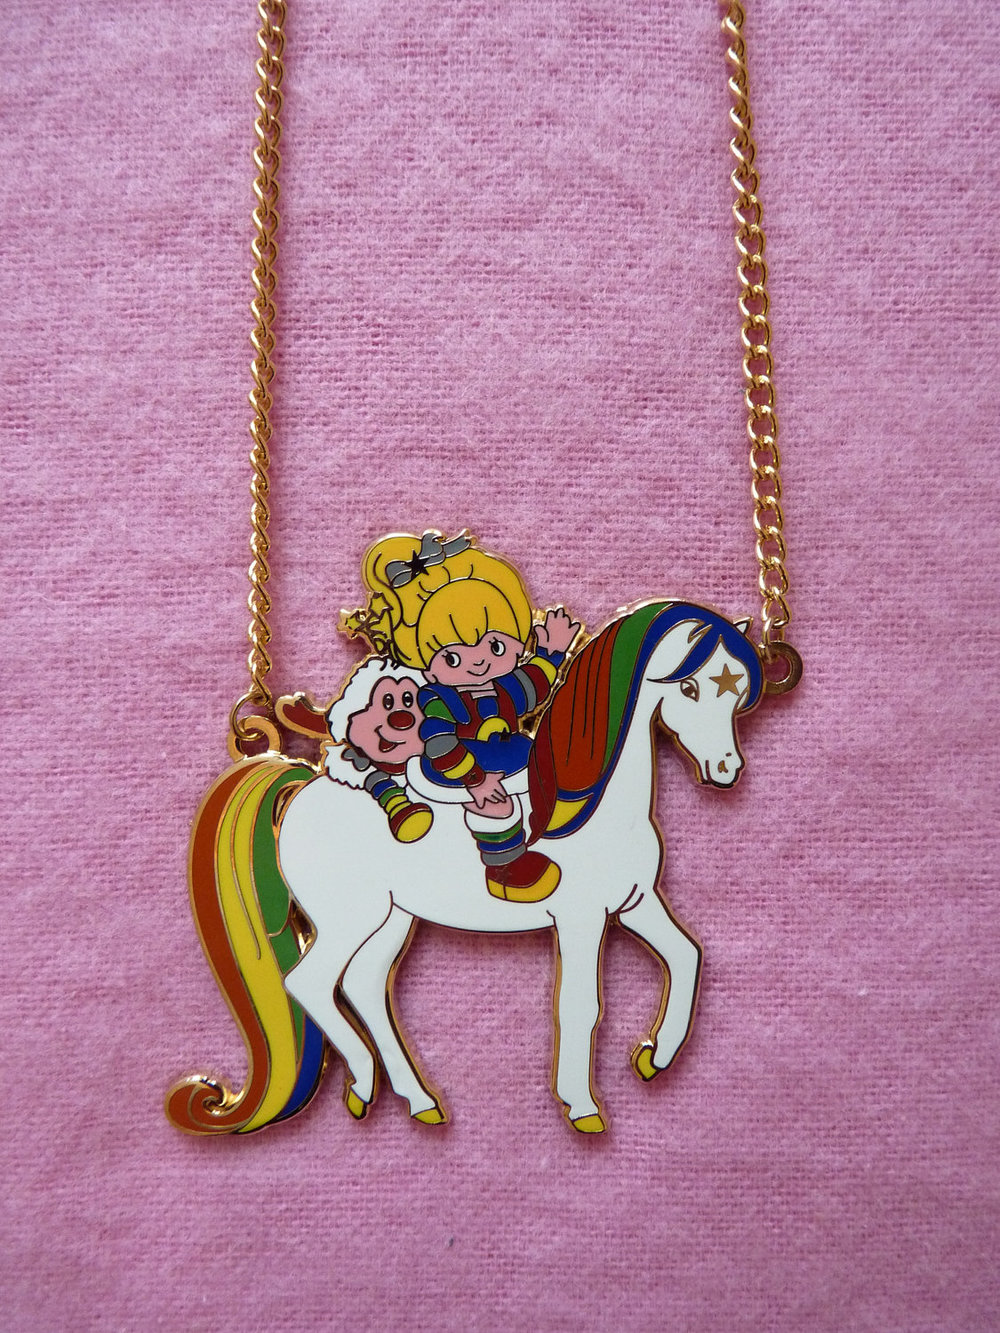 She-ra, Jem & Rainbow Brite Necklaces